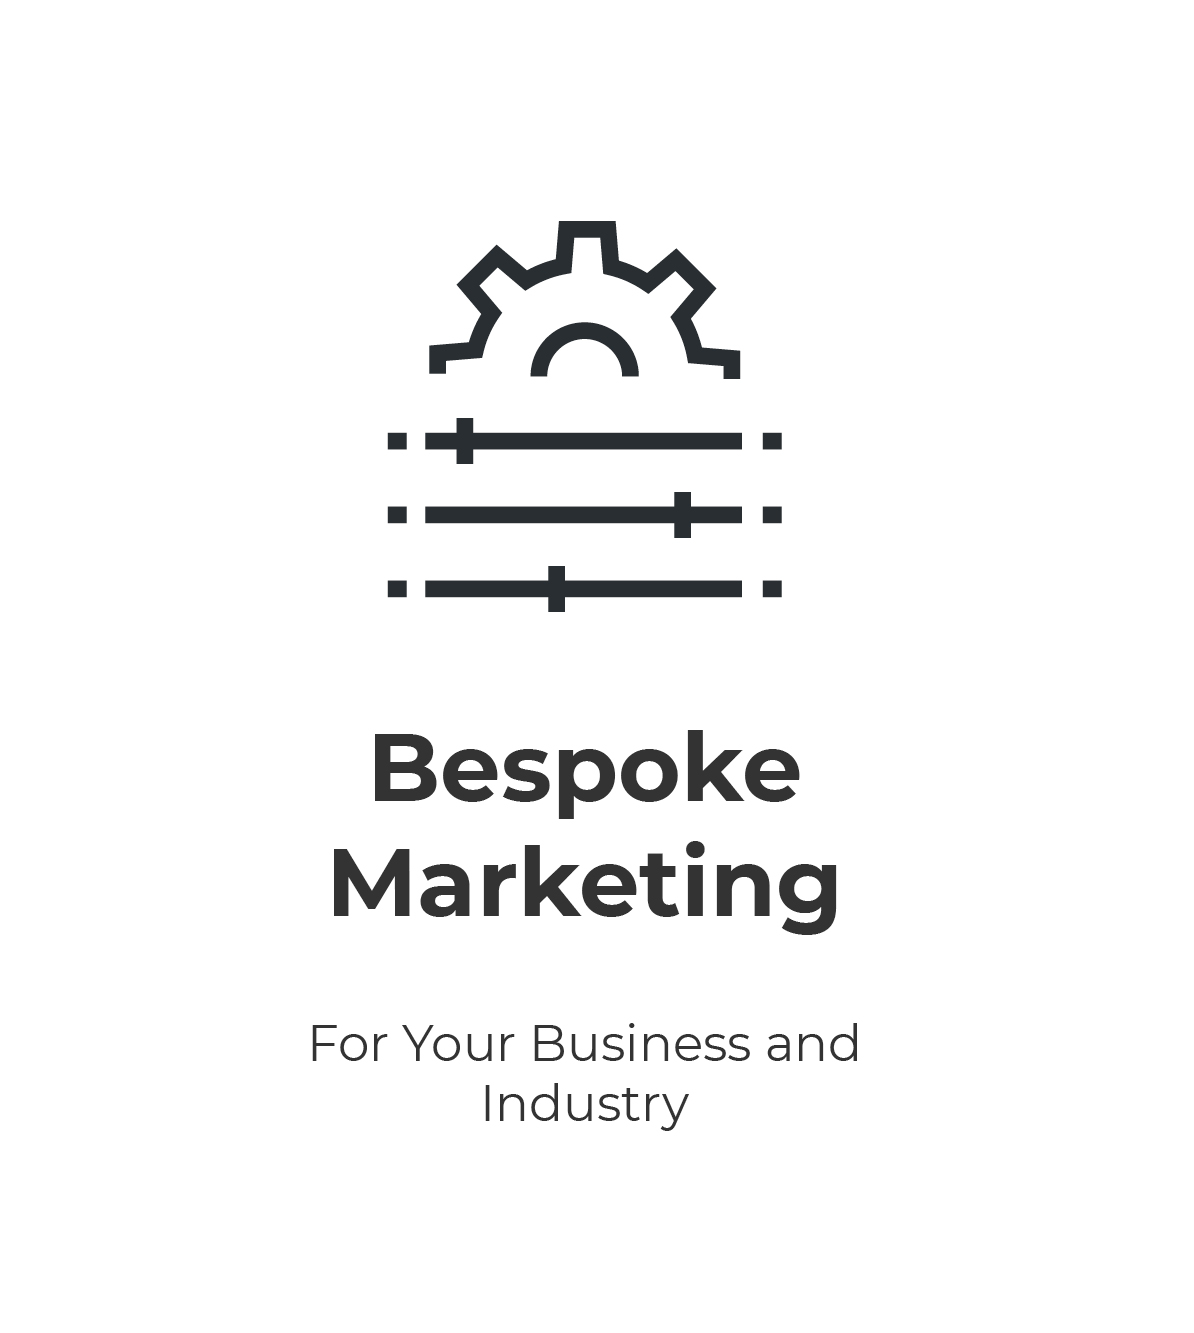 Bespoke Marketing